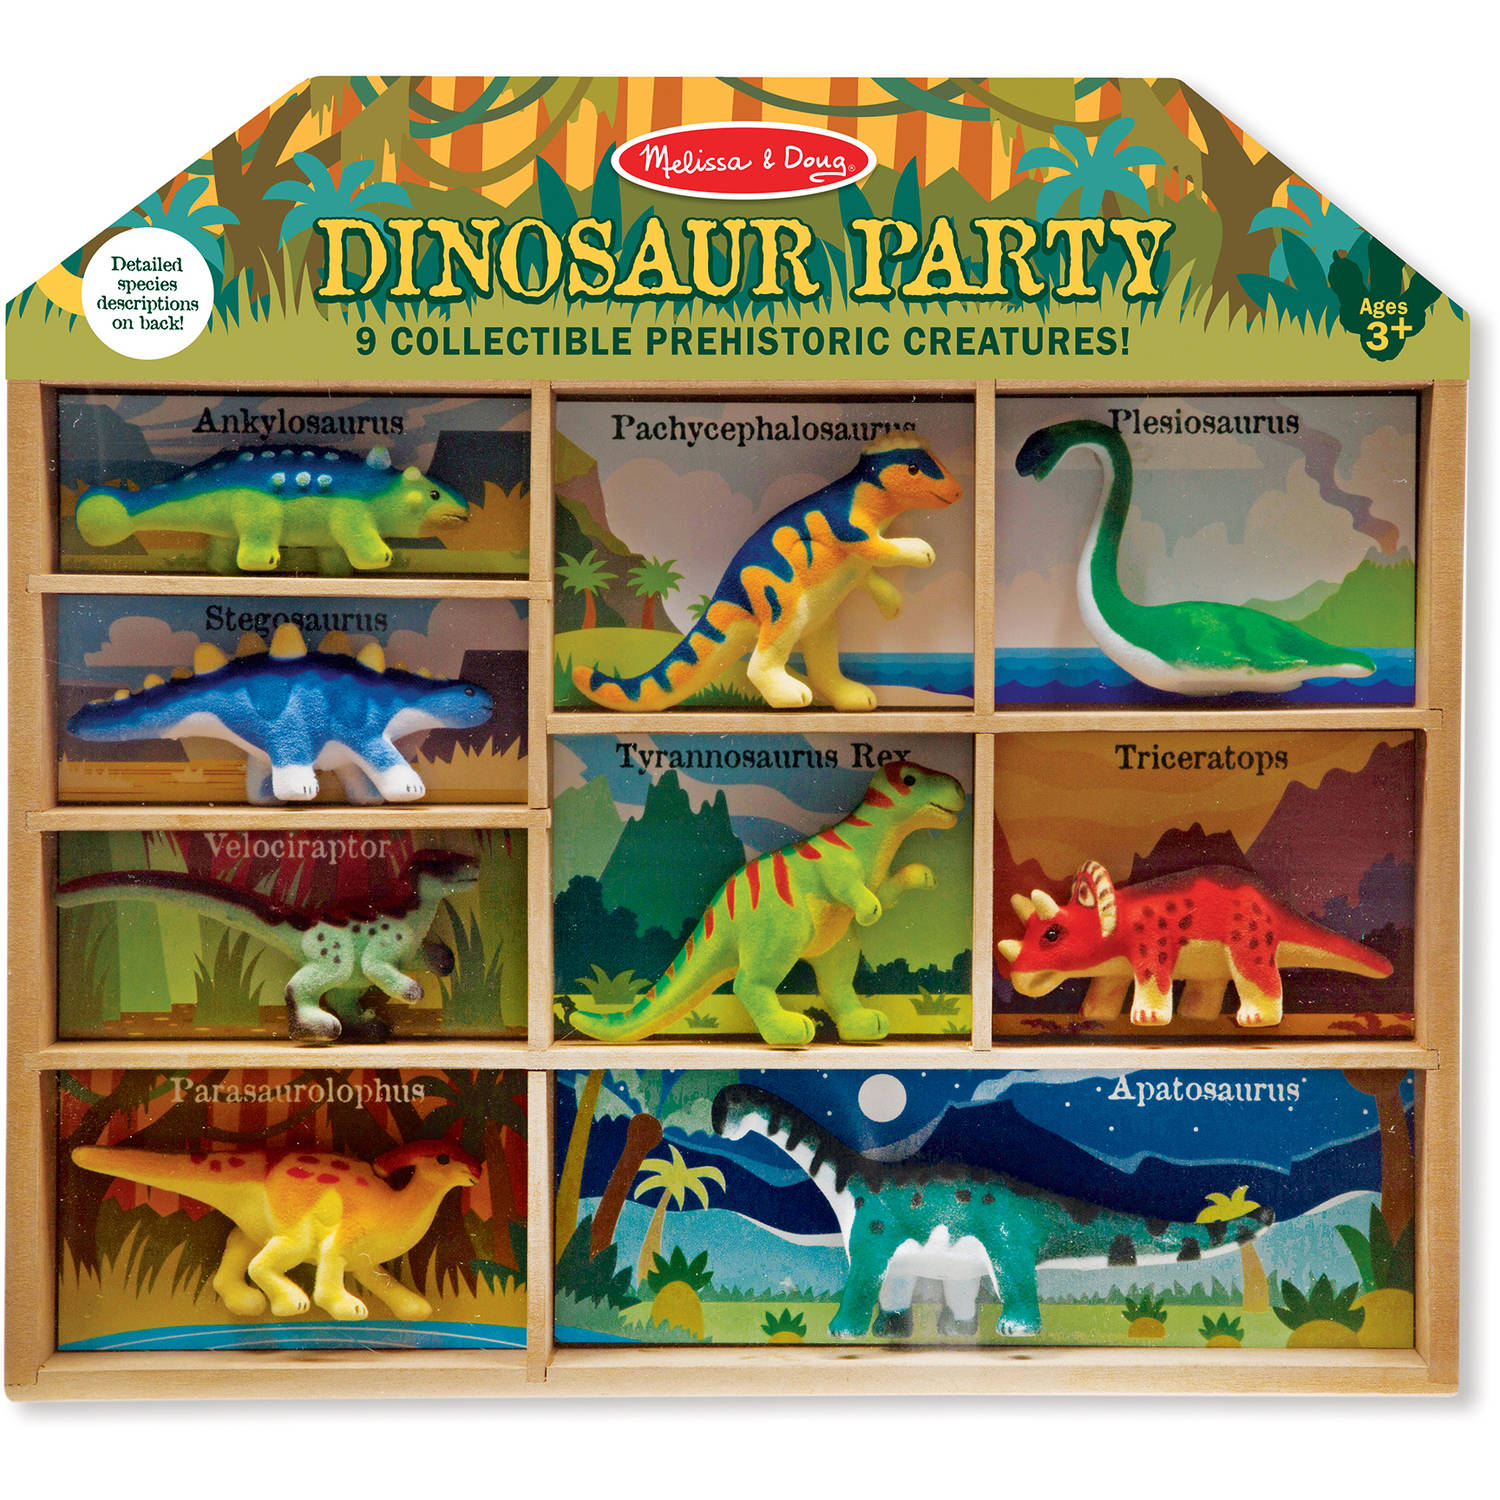 Dinosaurs Mdf Toy Box Childrens Storage Toys Games Books: Melissa & Doug Dinosaur Party Play Set, 9 Collectible